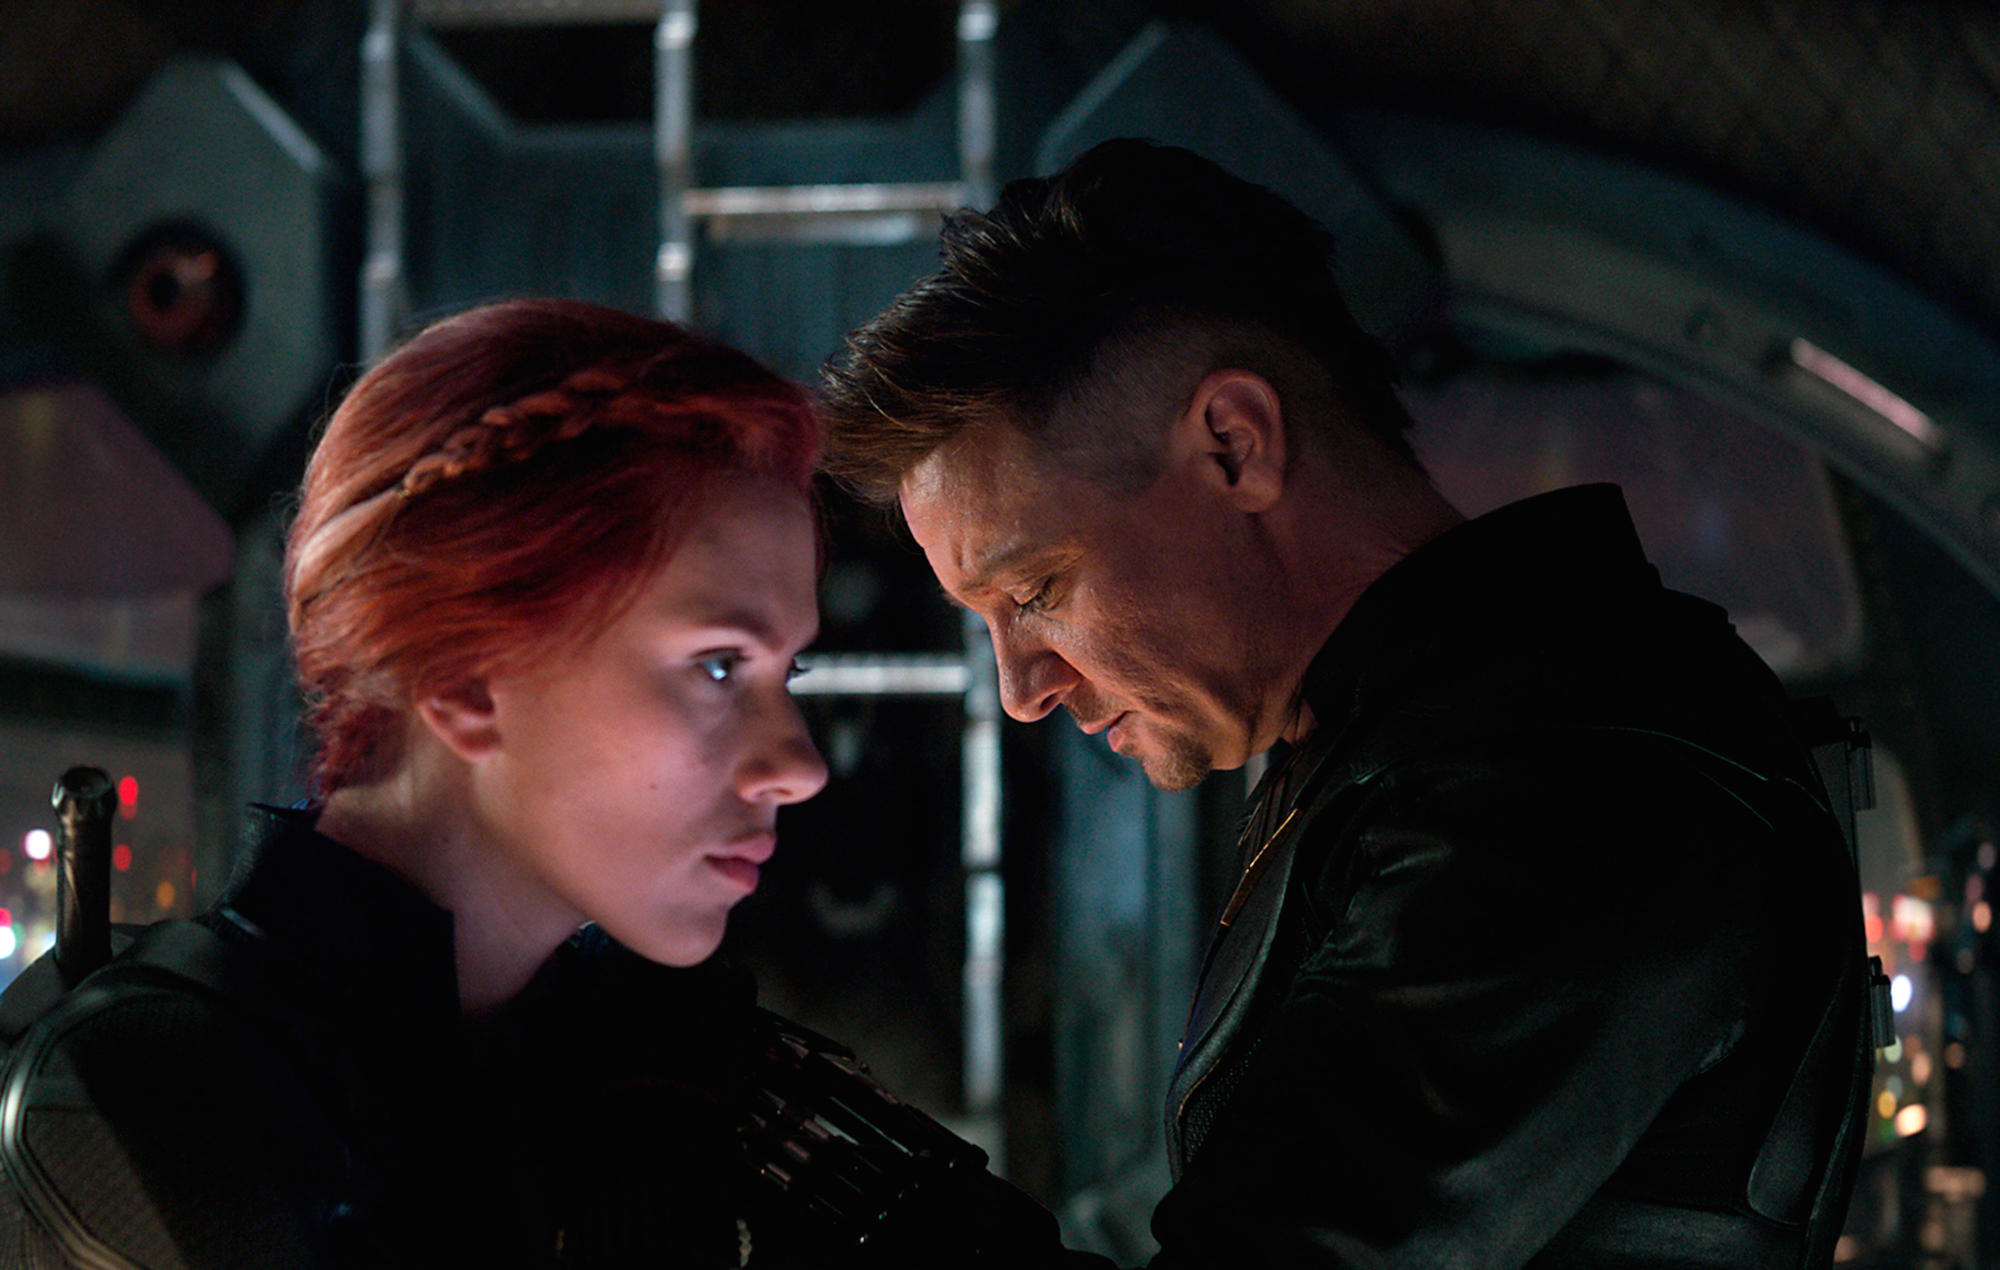 T5PAG9 Avengers Endgame 2019 Real Anthony Russo et Joe Russo Scarlett Johansson Jeremy Renner. Collection Christophel © Marvel Studios